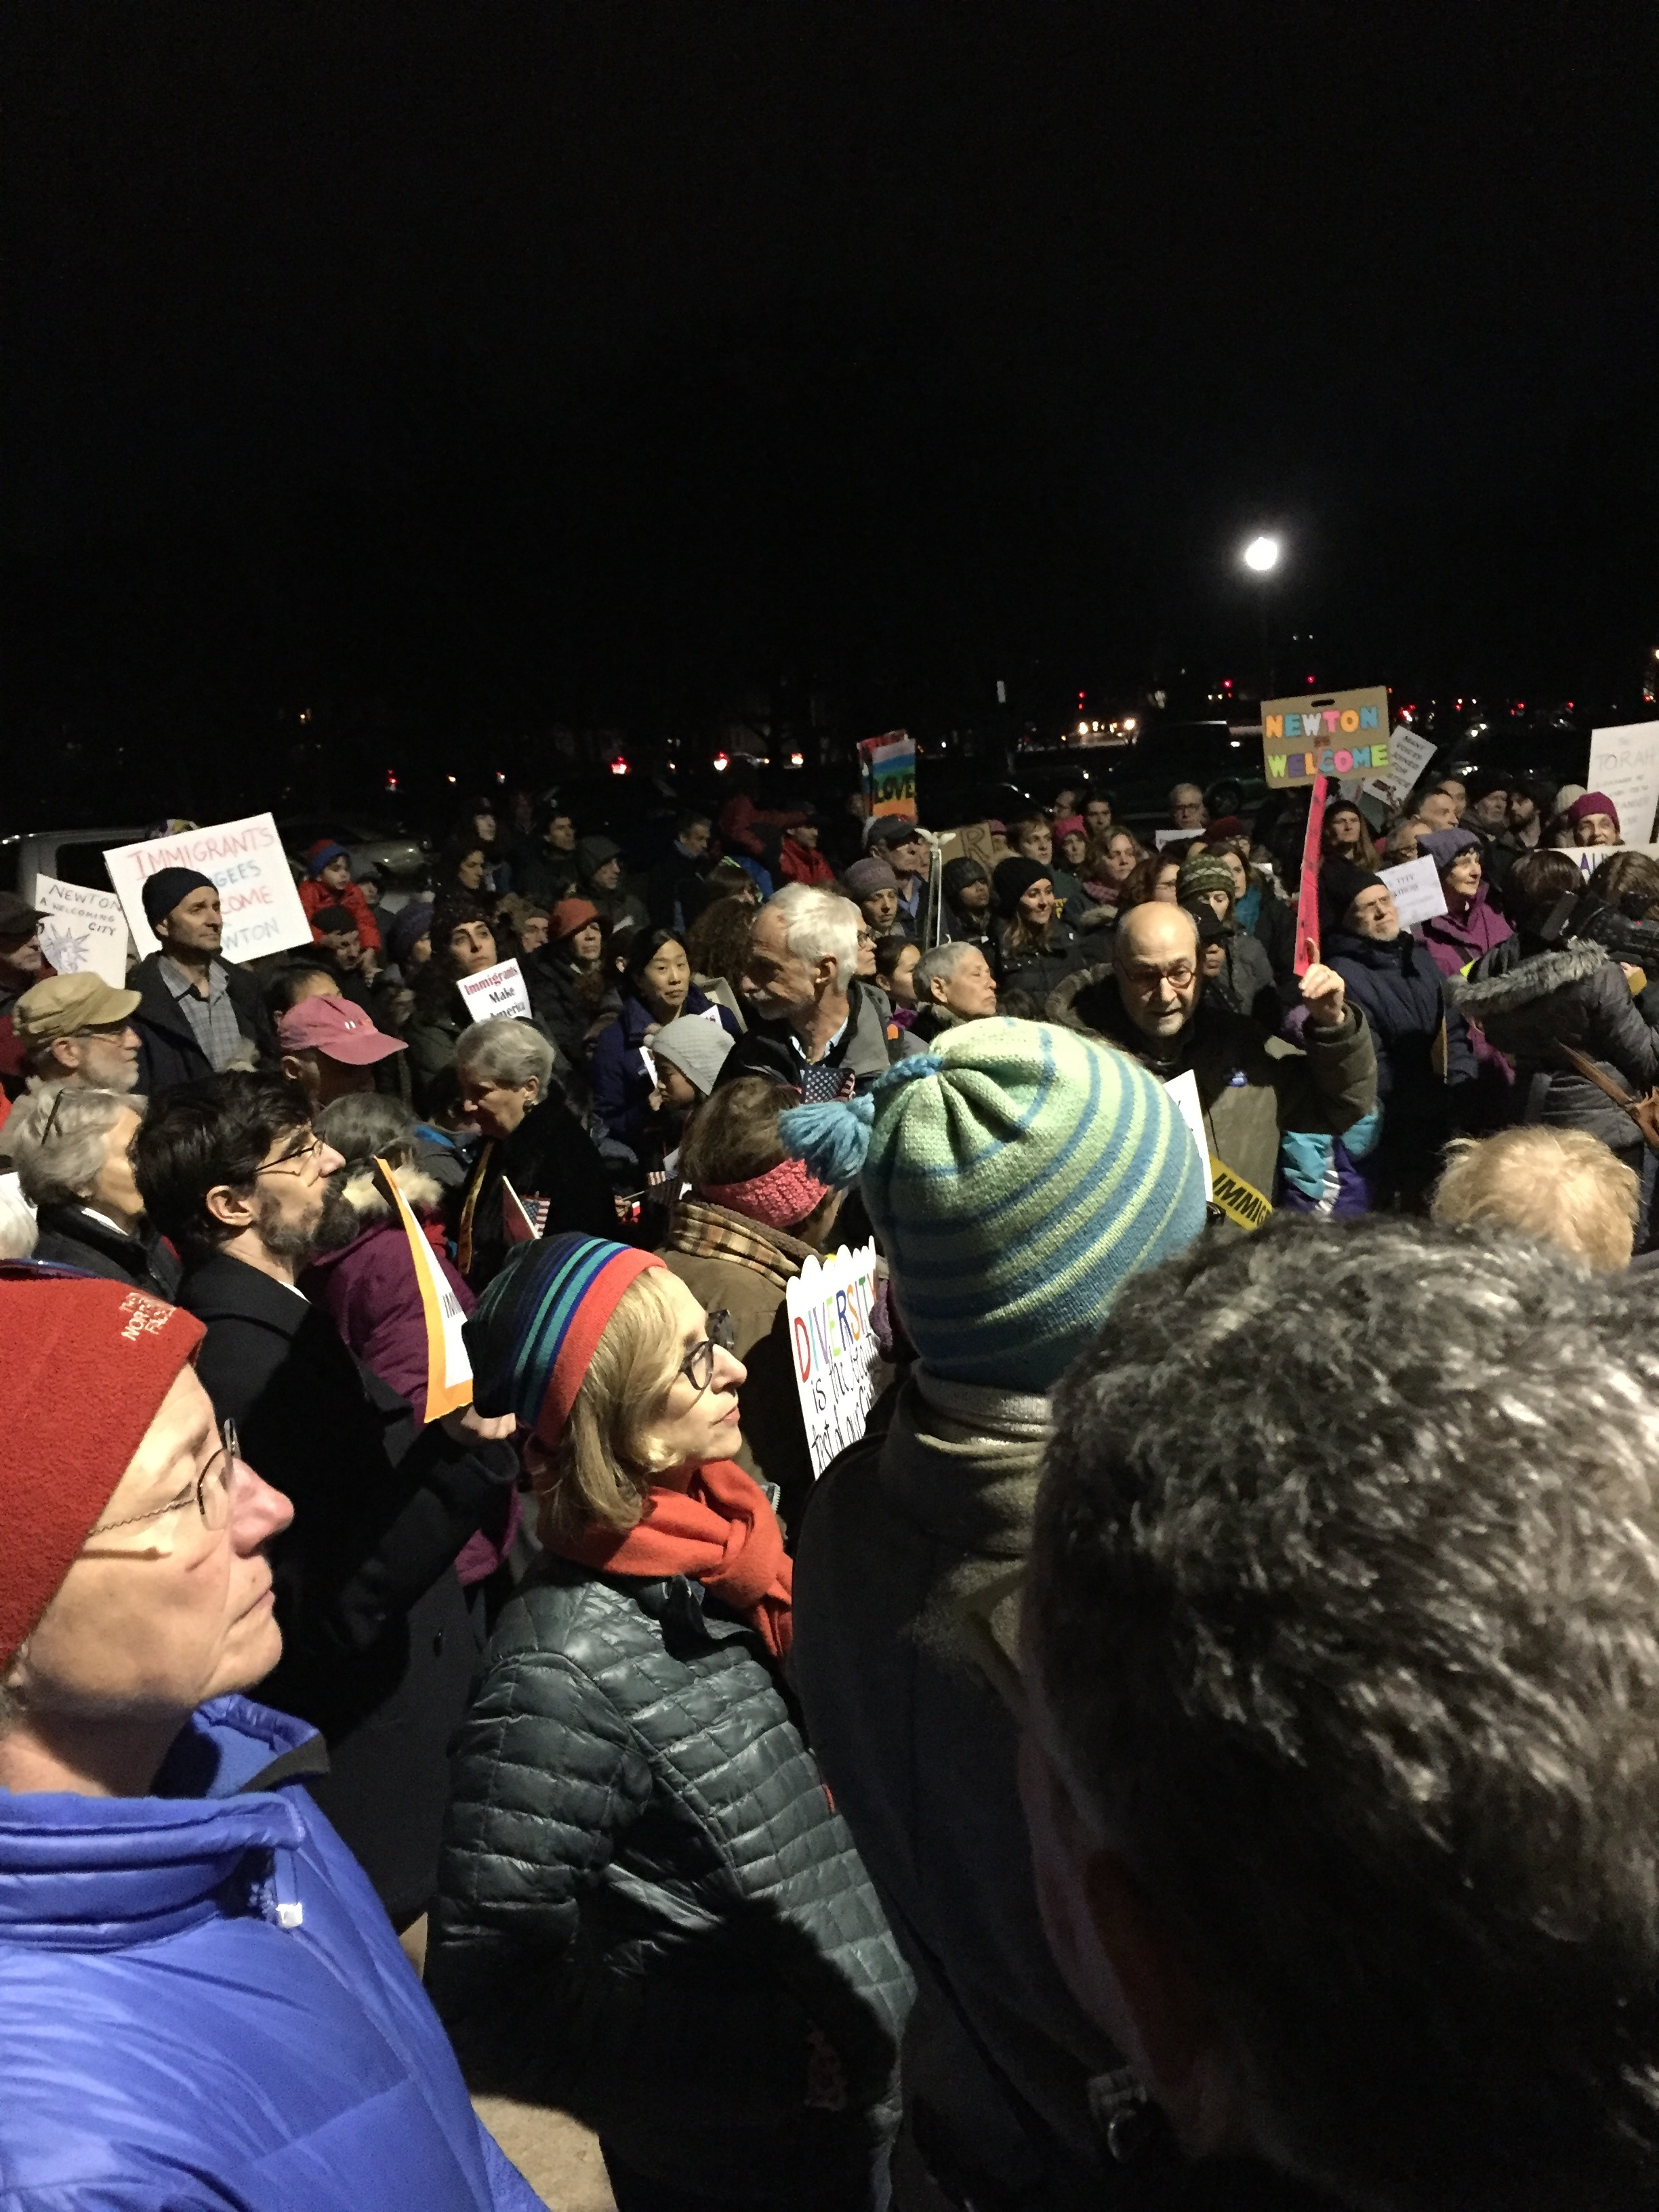 Rally at Newton City Hall in support of Welcoming City Status on February 8, 2017.On February 21st, the Ordinance was voted on and passed with a 16-1 victory!